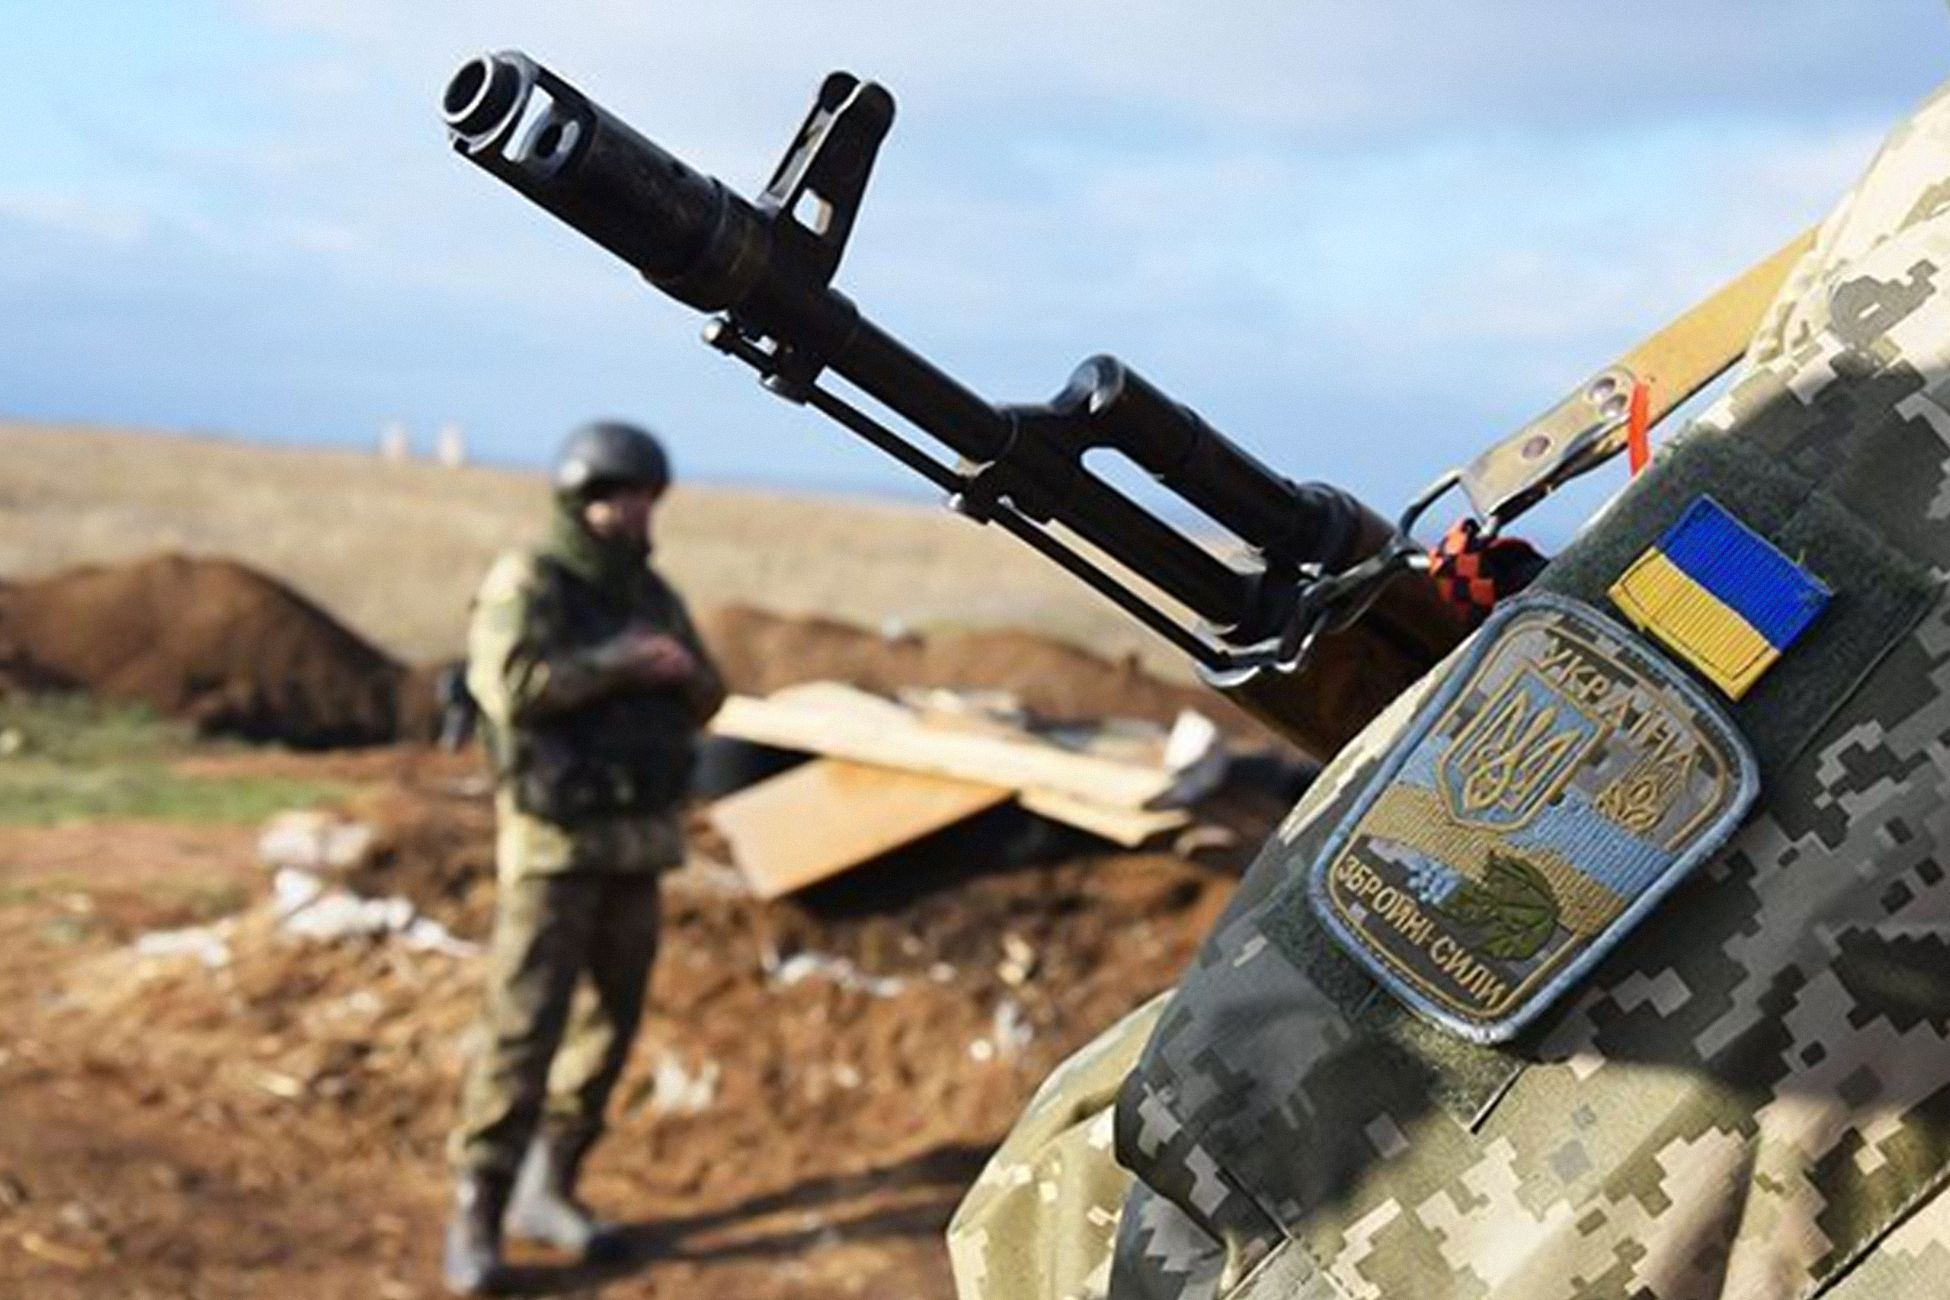 LPR People's Police reports the enemy continues to violate ceasefire by shelling Donbass